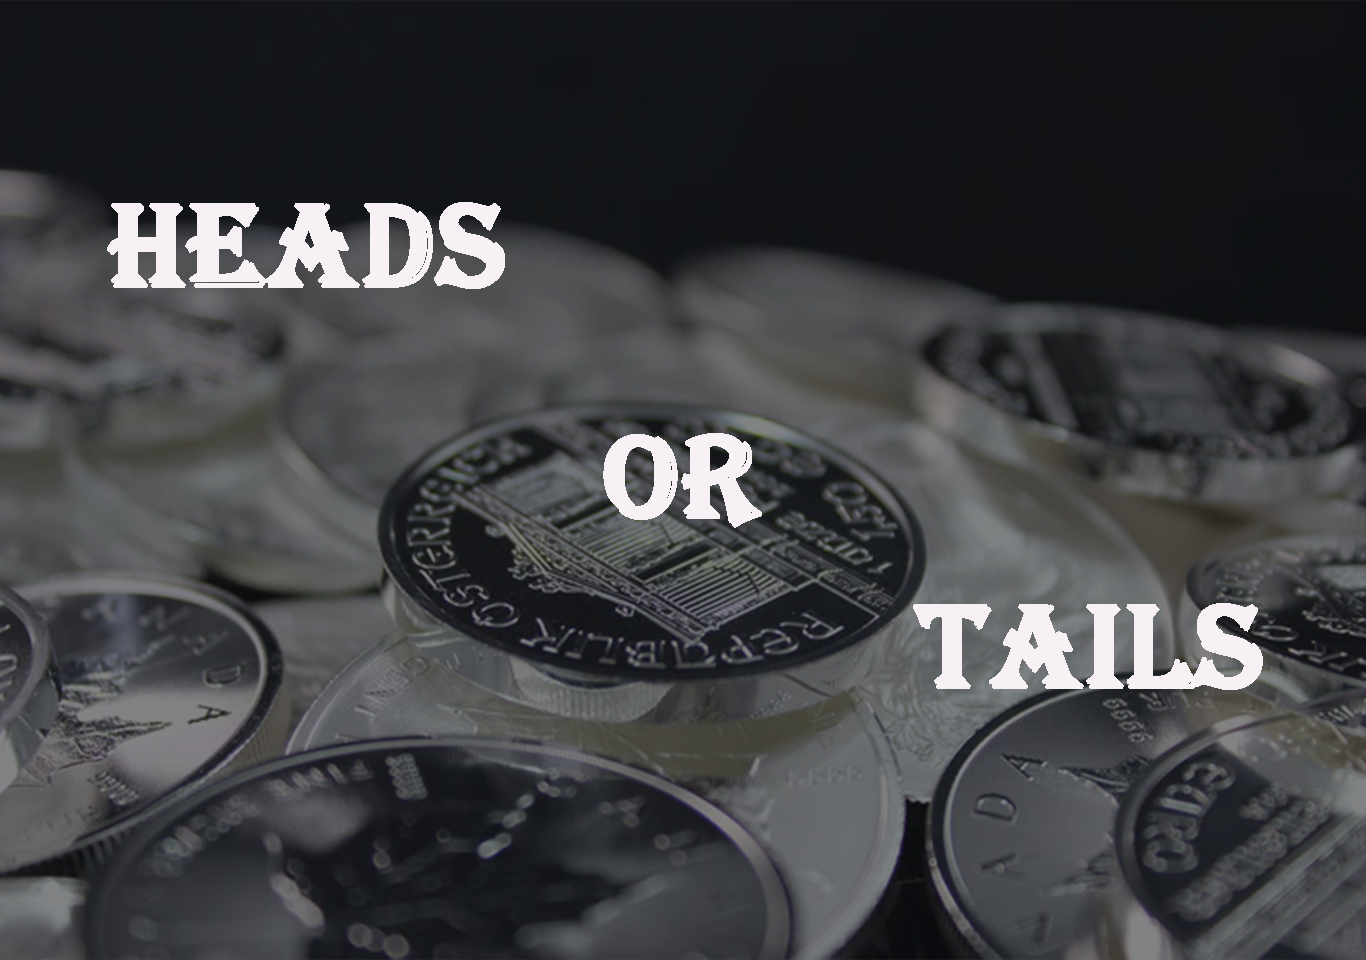 Heads or tails in python with Source code